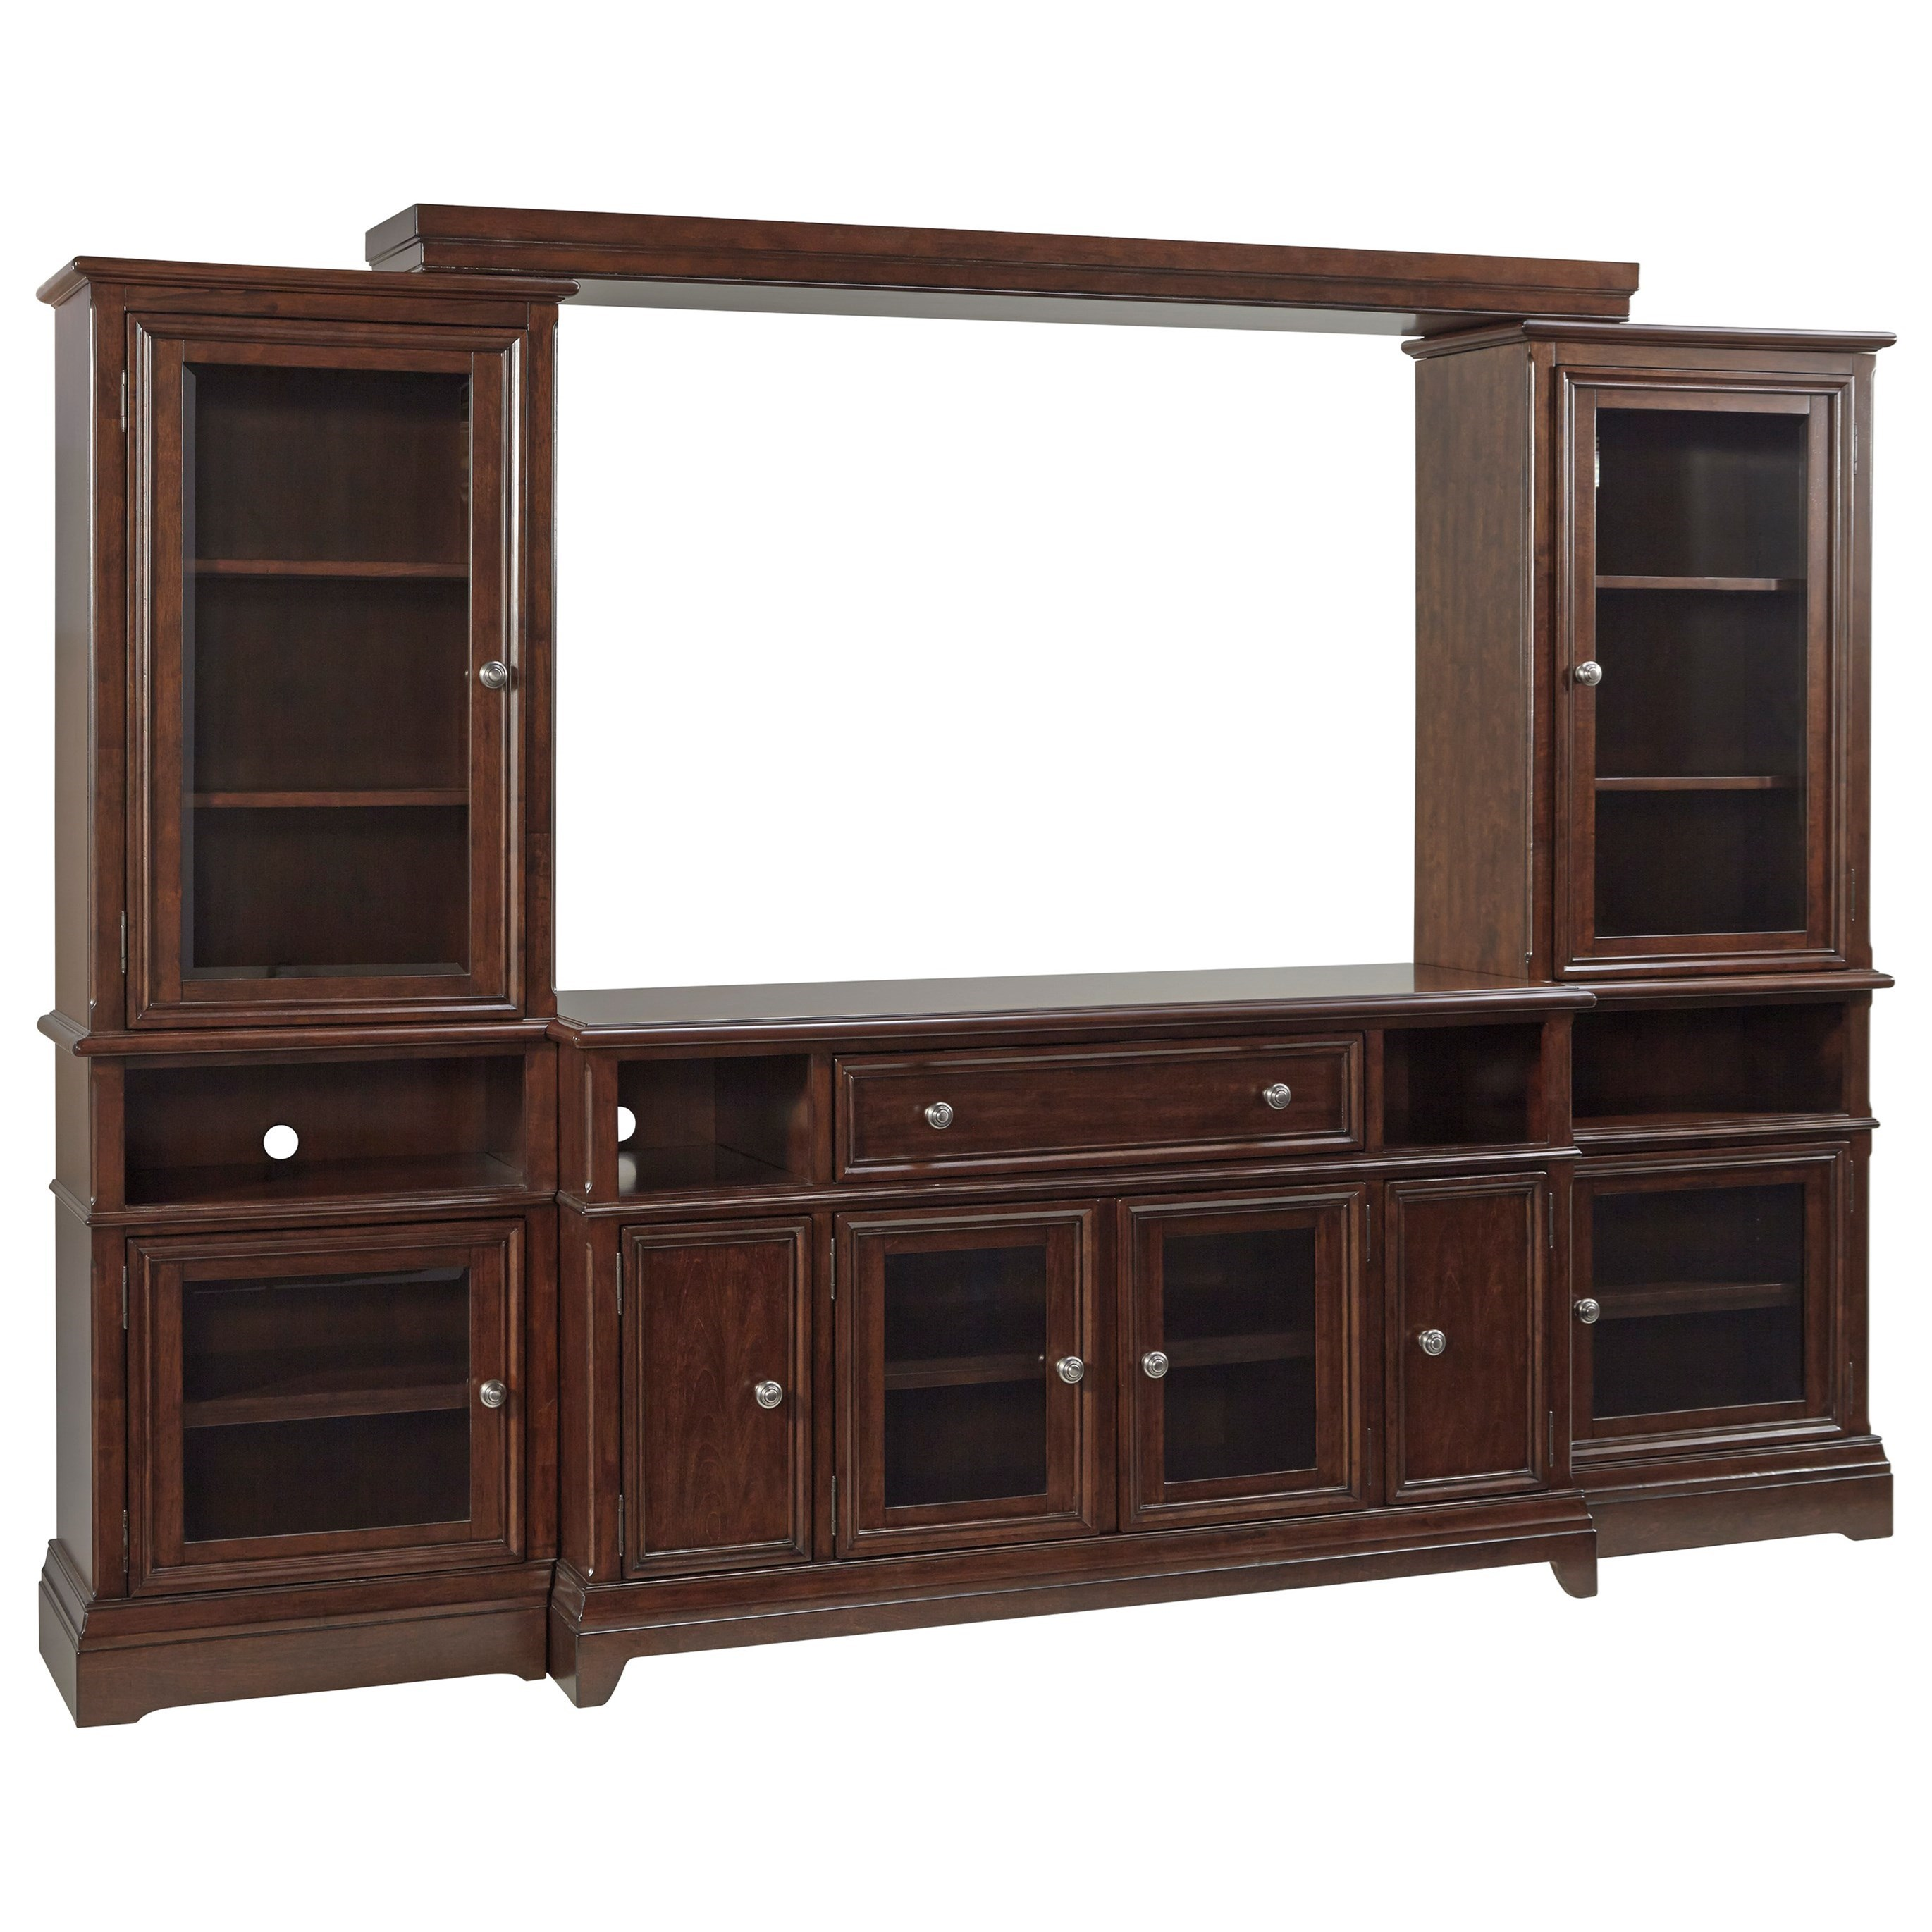 Ashley Furniture Bedroom Wall Unit Home Design